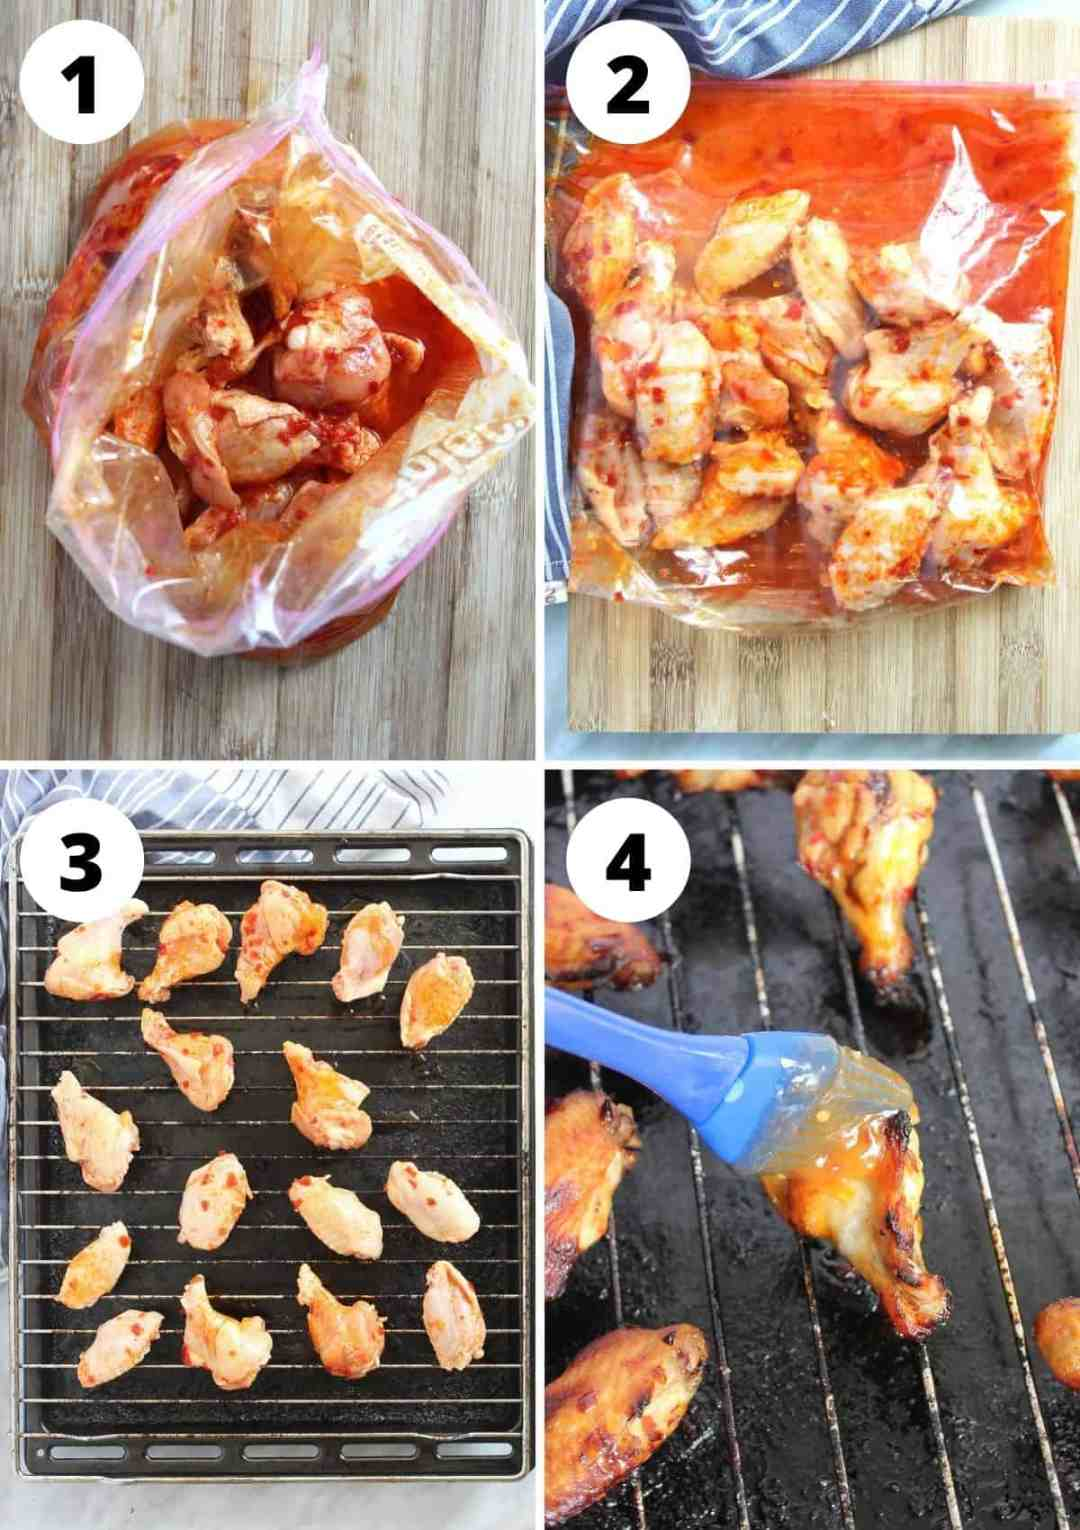 Four photos to show how to marinate and bake the chicken wings